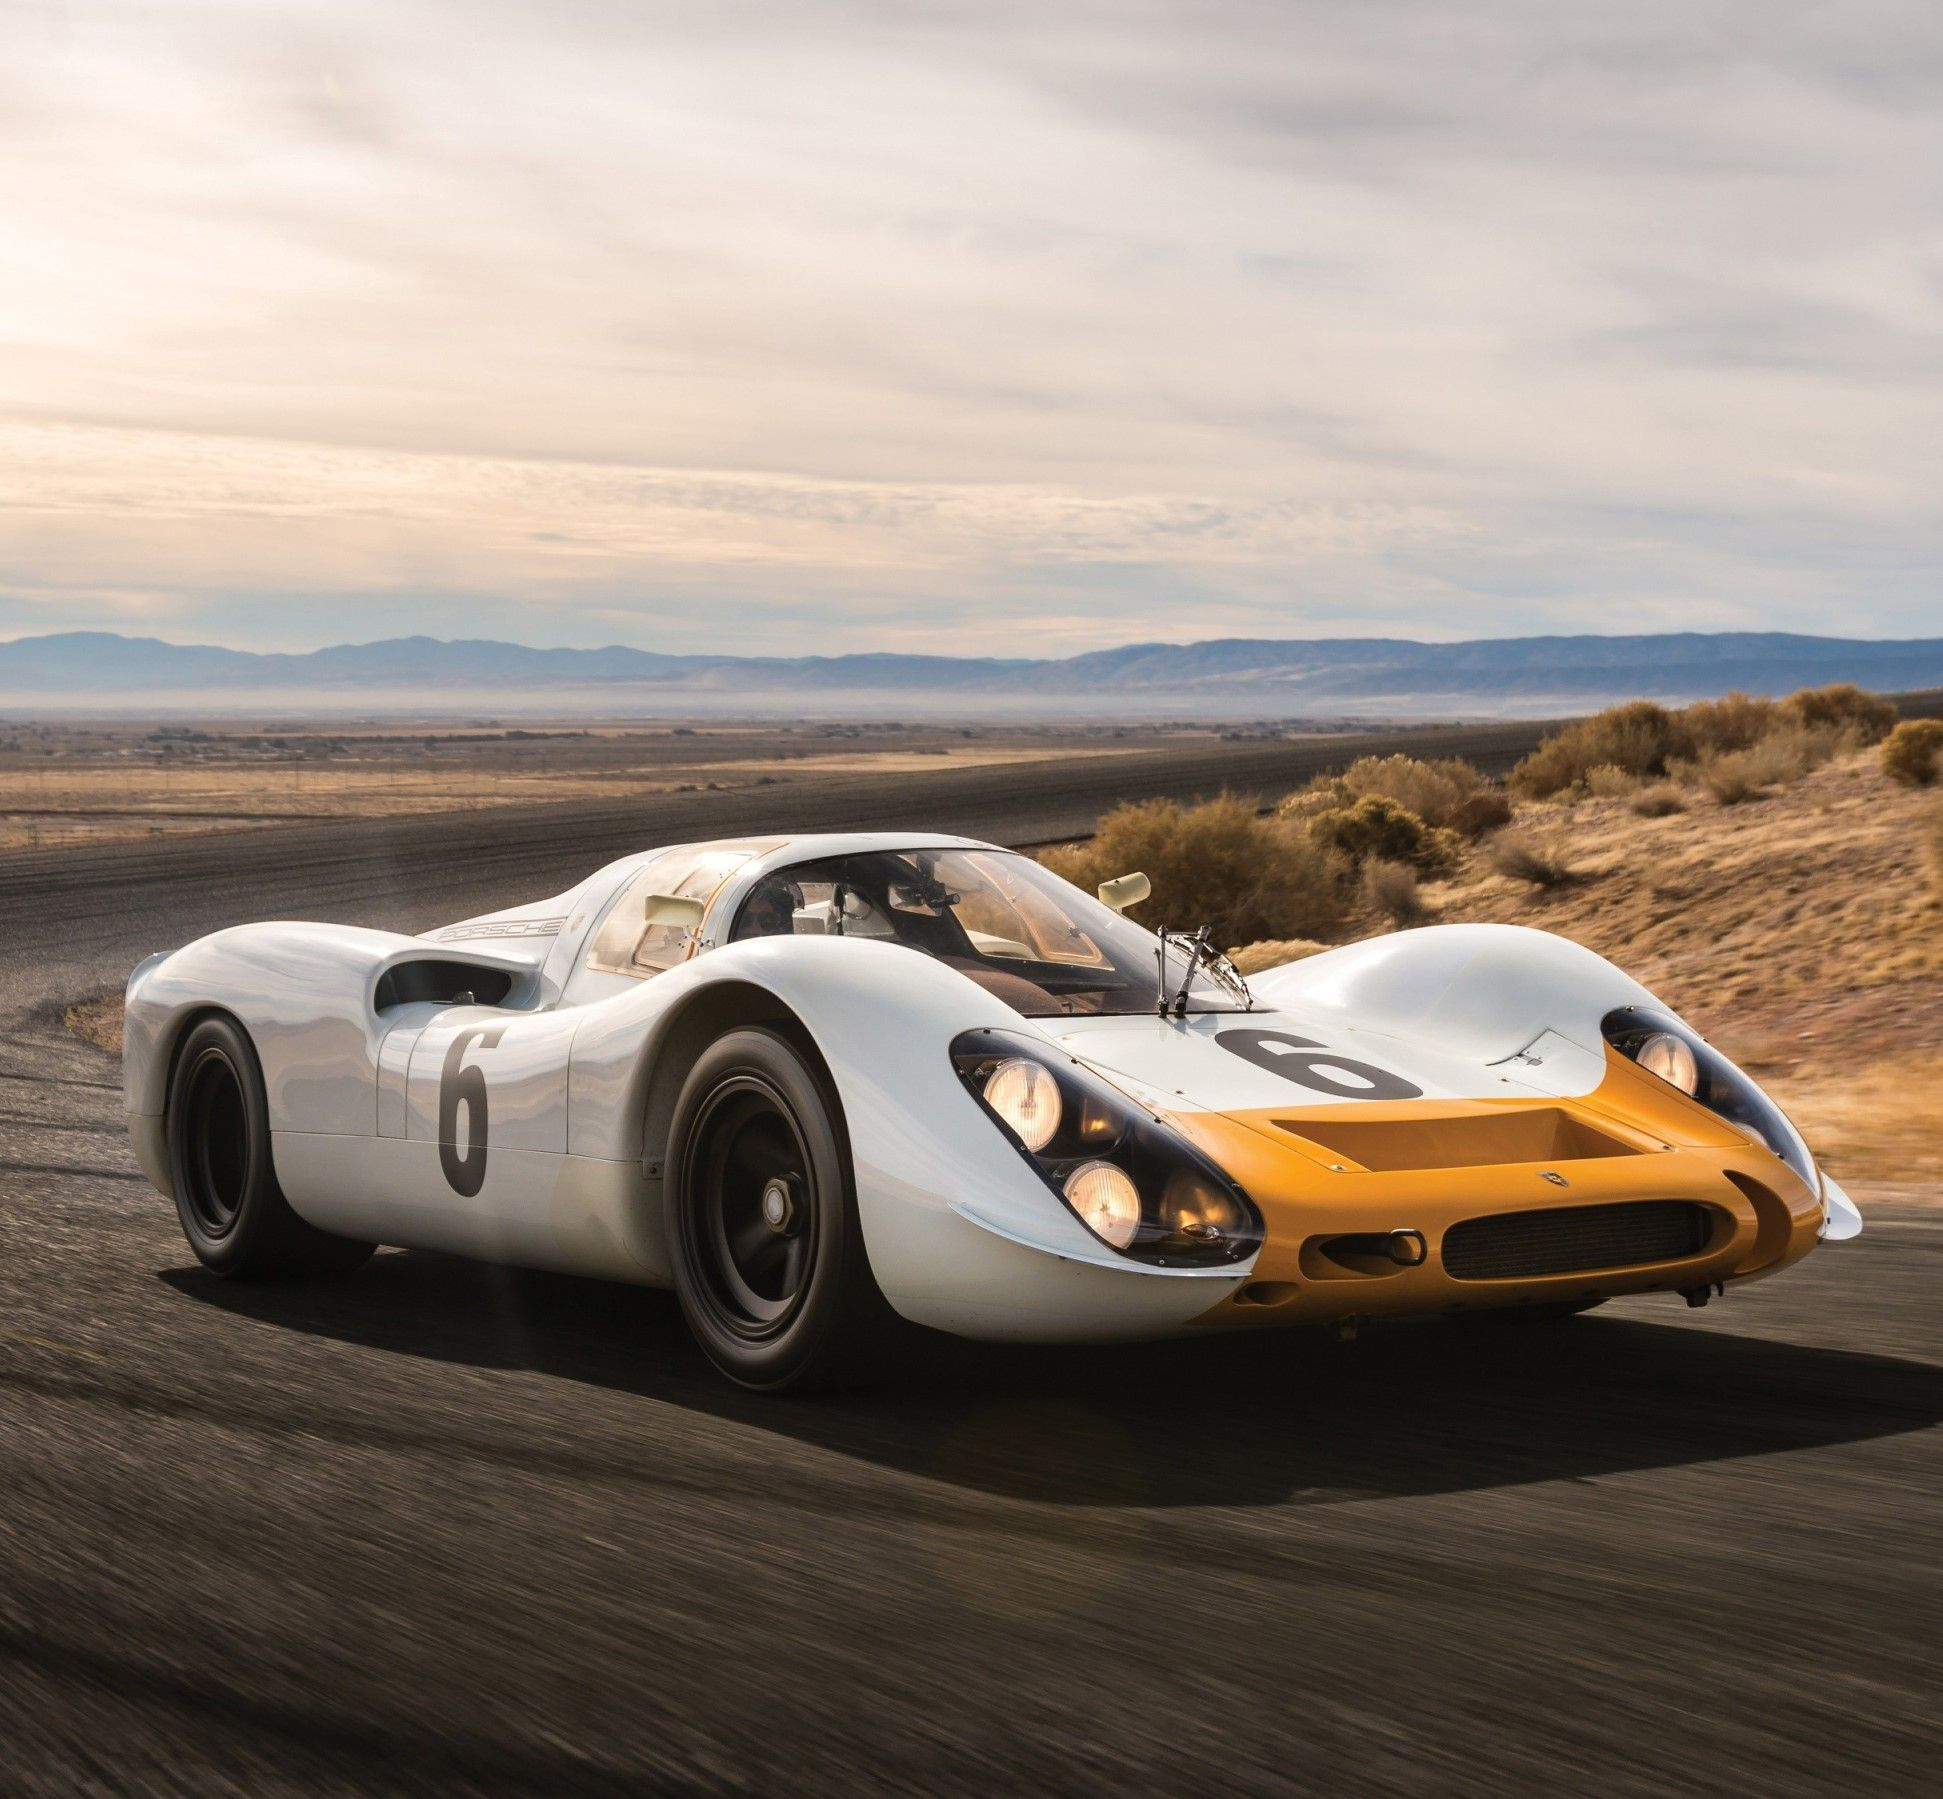 1968 Porsche 908 Kurzheck Coupe The Man Sports Car Porsche Racing